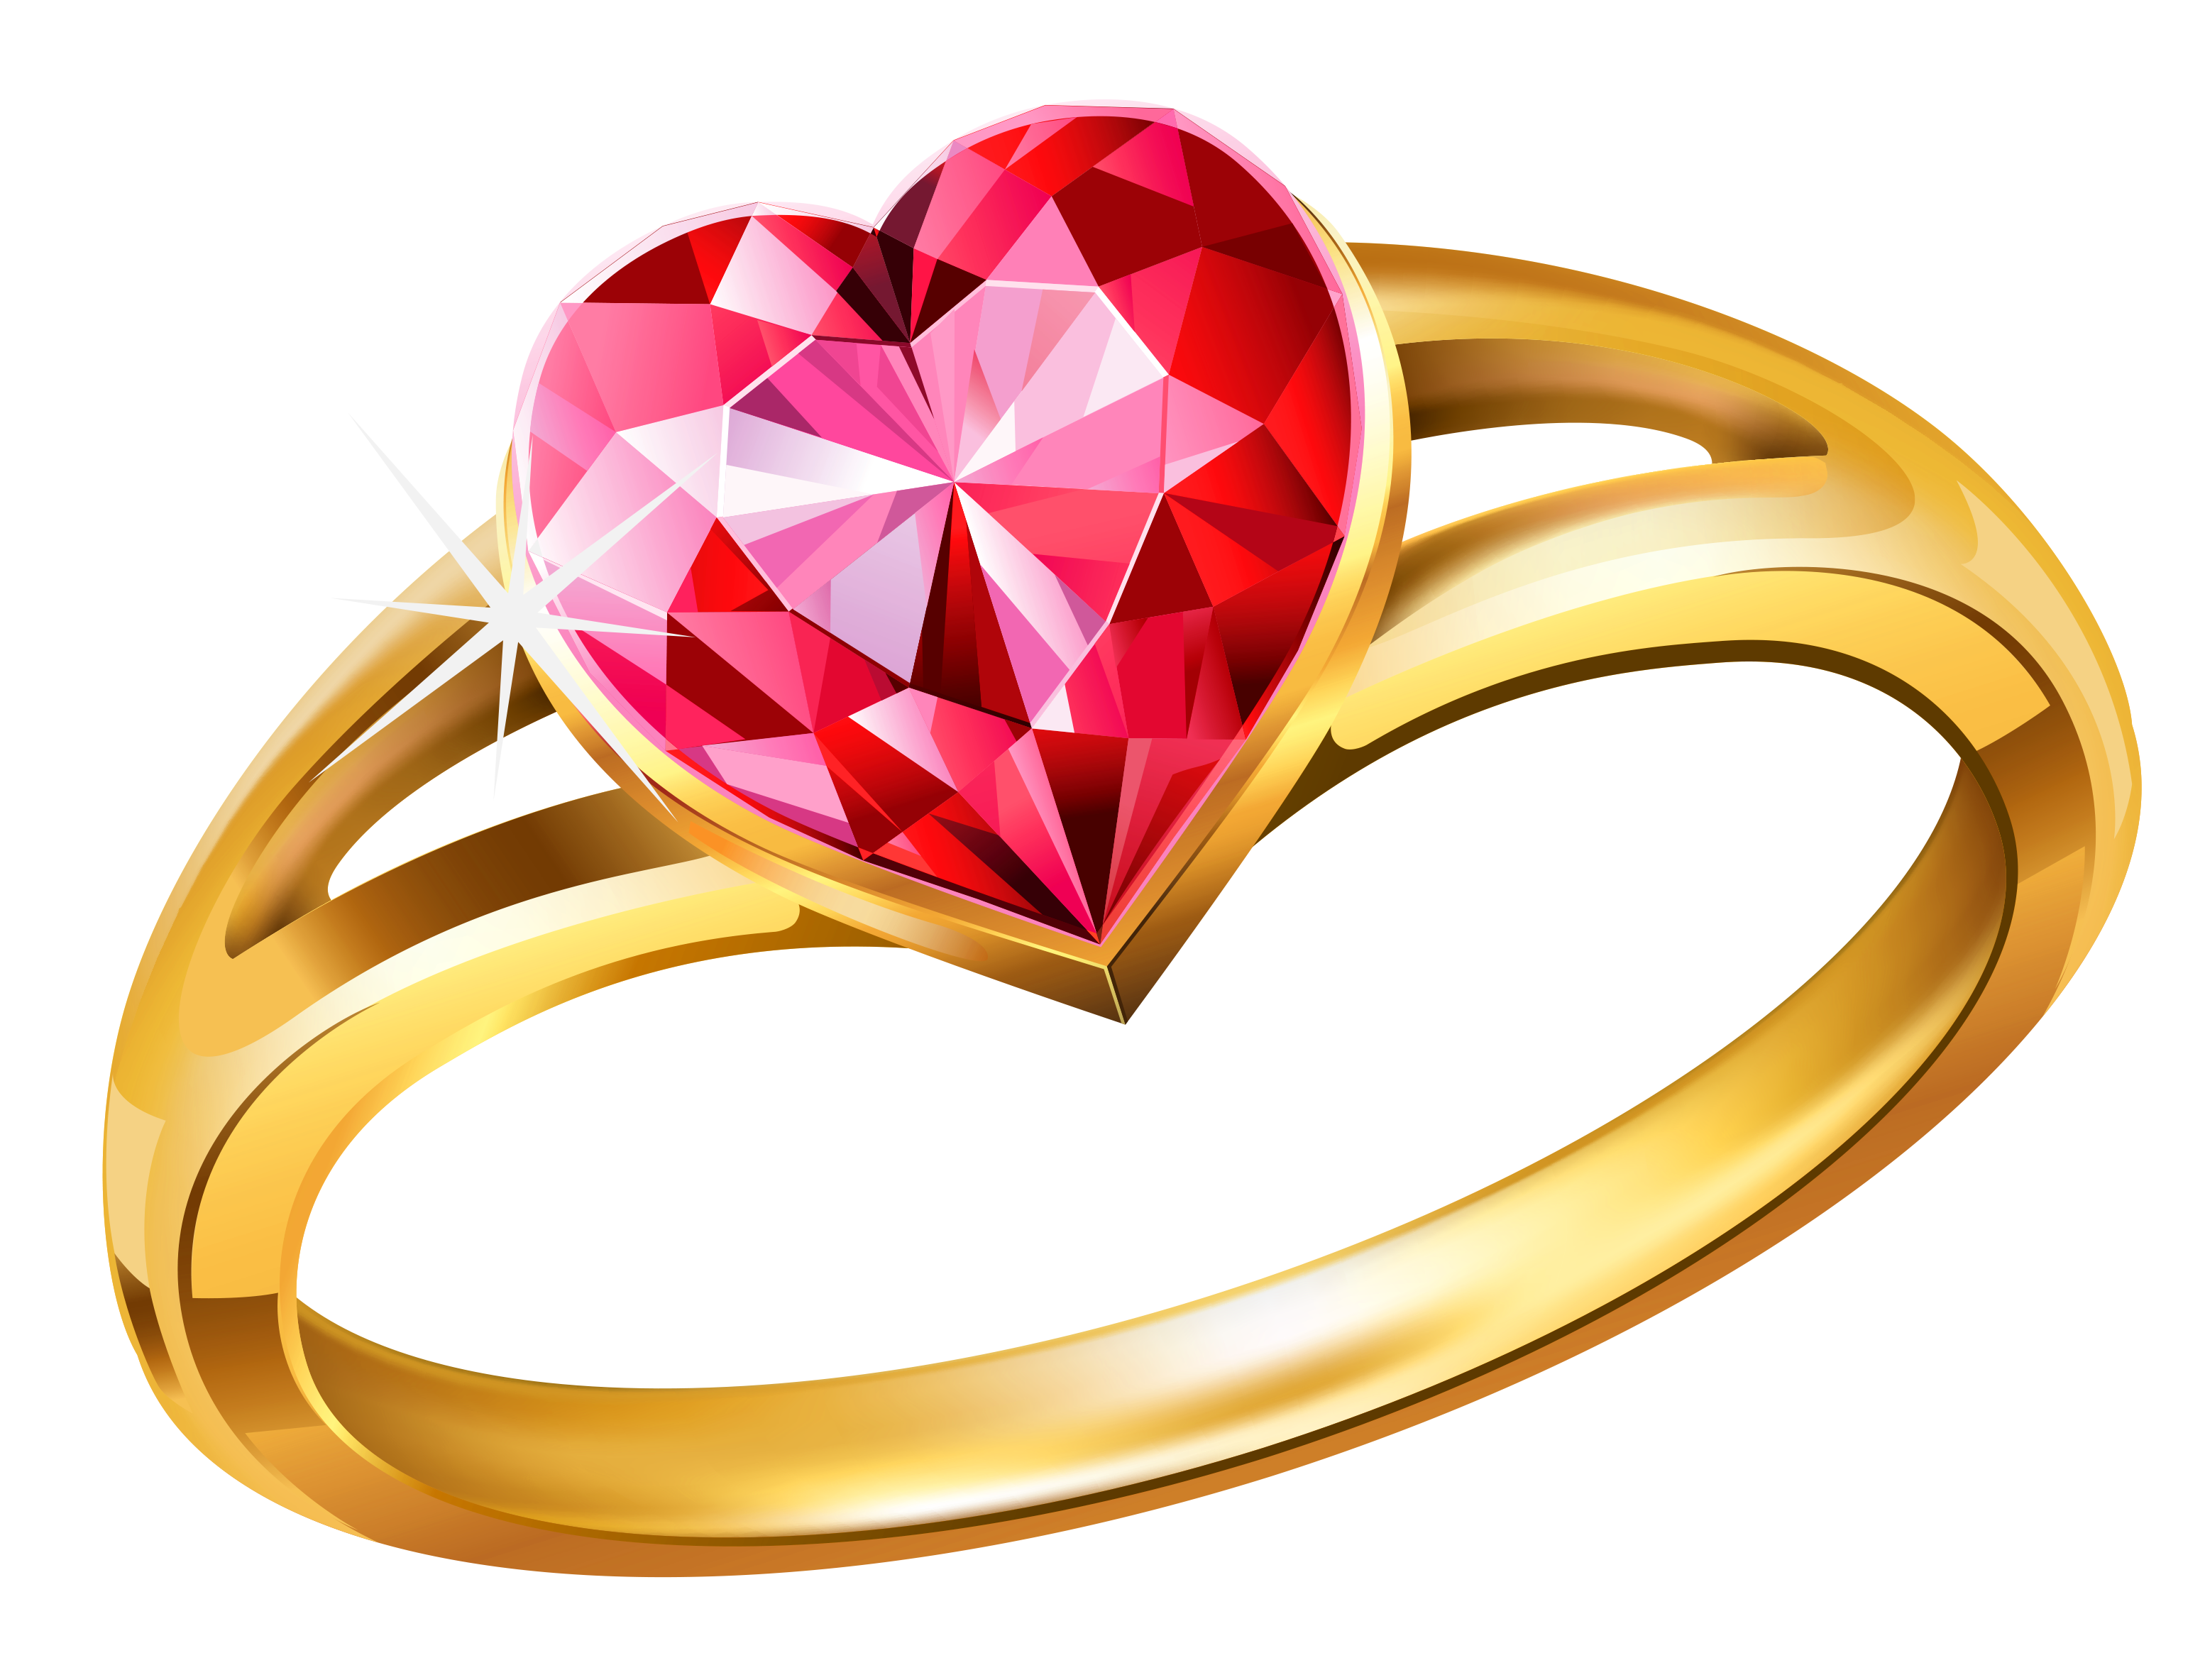 Heart diamond clipart png stock Jewelry PNG images free download, ring PNG, earnings PNG | Jewelry ... png stock